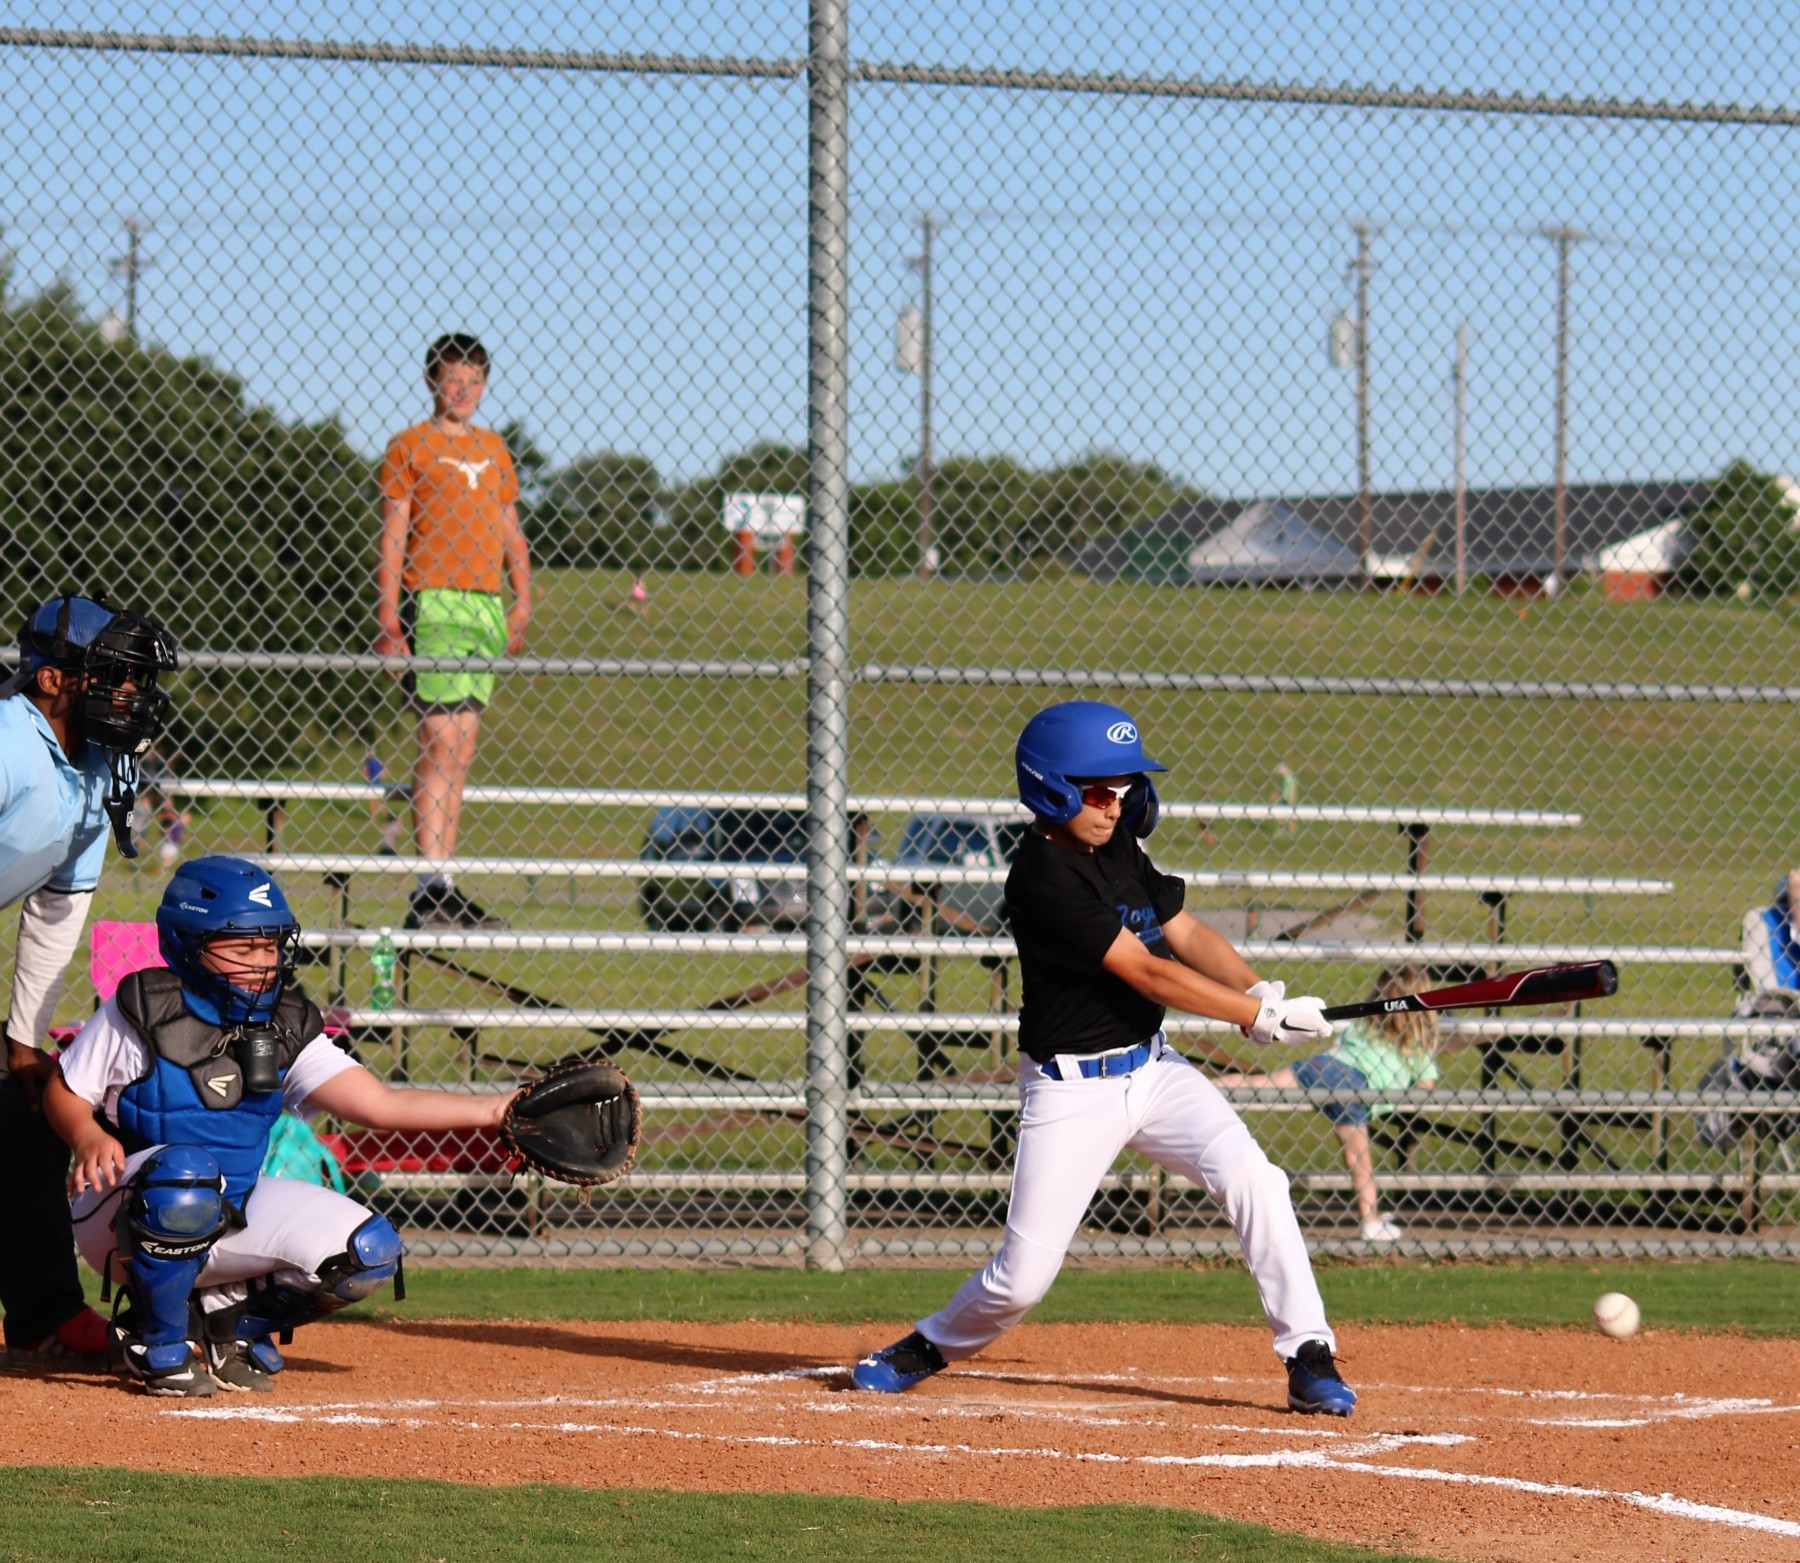 Youth sports 35